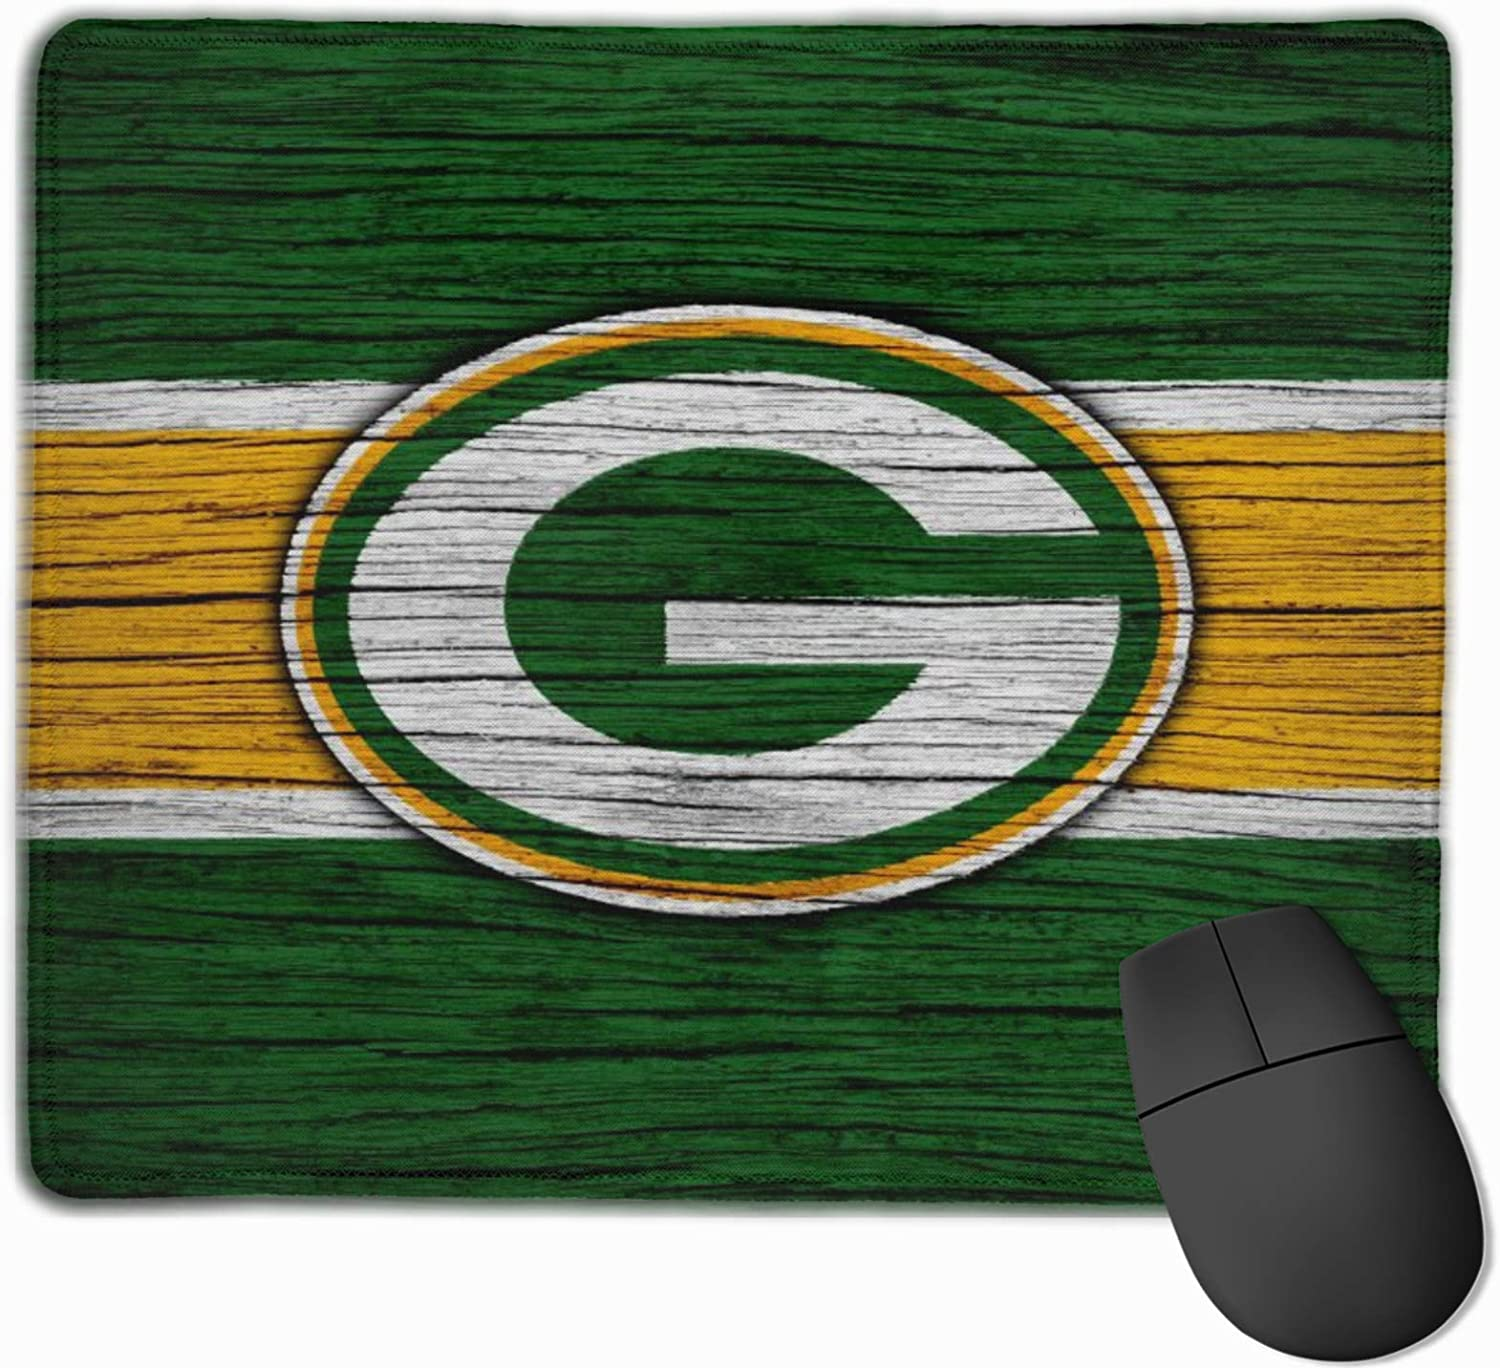 Pierset Sports Gre-En Bay Pack-Ers Mouse Pad with Stitched Edges, Non-Slip Rubber Base Gaming Mouse Mat for Computers Laptop Office Home Desk Pc Accessories 12x10 Inch